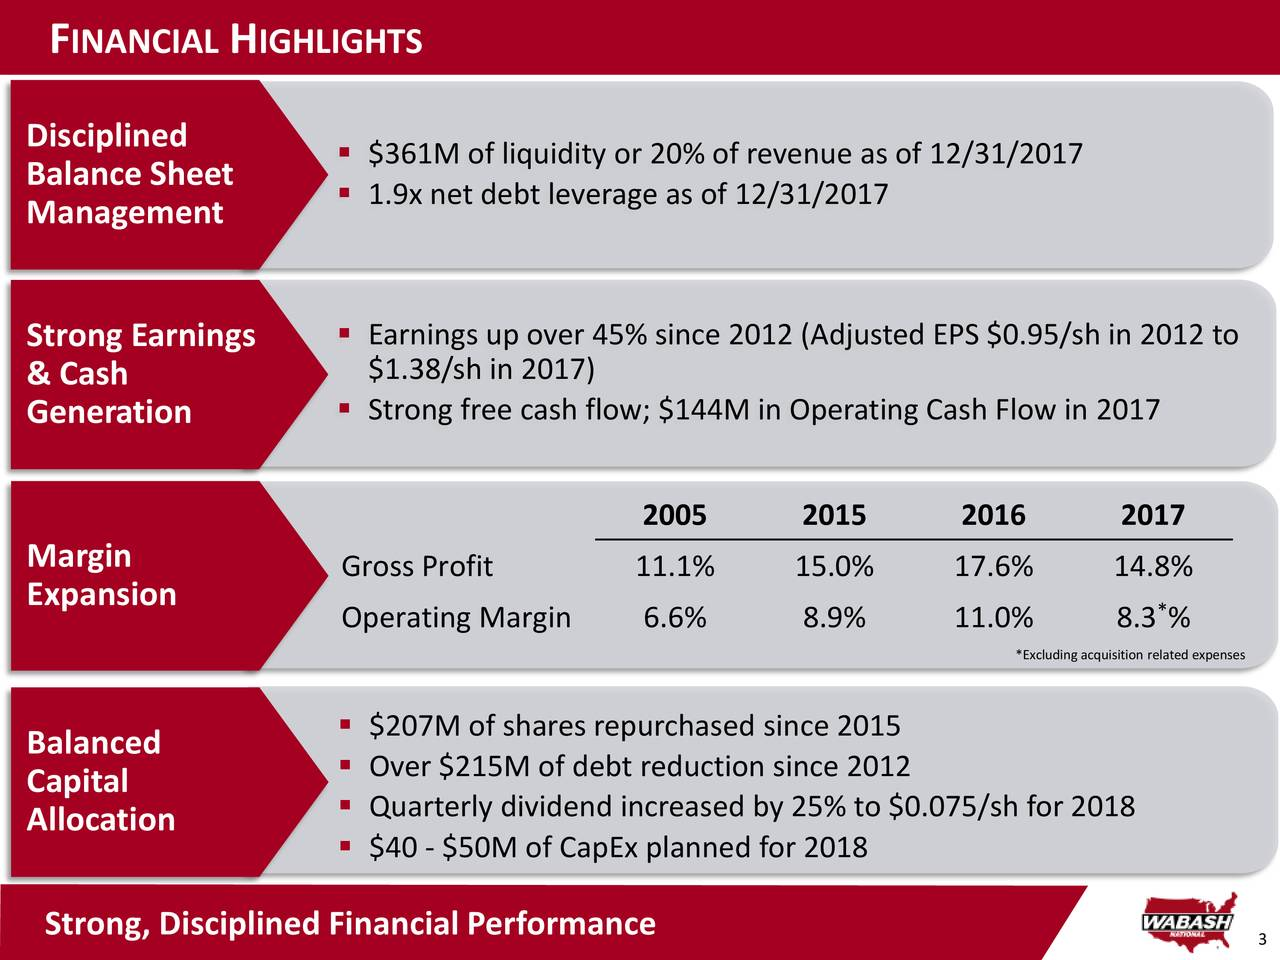 Disciplined  $361M of liquidity or 20% of revenue as of 12/31/2017 Balance Sheet  1.9x net debt leverage as of 12/31/2017 Management Strong Earnings  Earnings up over 45% since 2012 (Adjusted EPS $0.95/sh in 2012 to $1.38/sh in 2017) & Cash Generation  Strong free cash flow; $144M in Operating Cash Flow in 2017 2005 2015 2016 2017 Margin Gross Profit 11.1% 15.0% 17.6% 14.8% Expansion Operating Margin 6.6% 8.9% 11.0% 8.3 % *Excluding acquisition related expenses  $207M of shares repurchased since 2015 Balanced  Over $215M of debt reduction since 2012 Capital Allocation  Quarterly dividend increased by 25% to $0.075/sh for 2018  $40 - $50M of CapEx planned for 2018 Strong, Disciplined Financial Performance